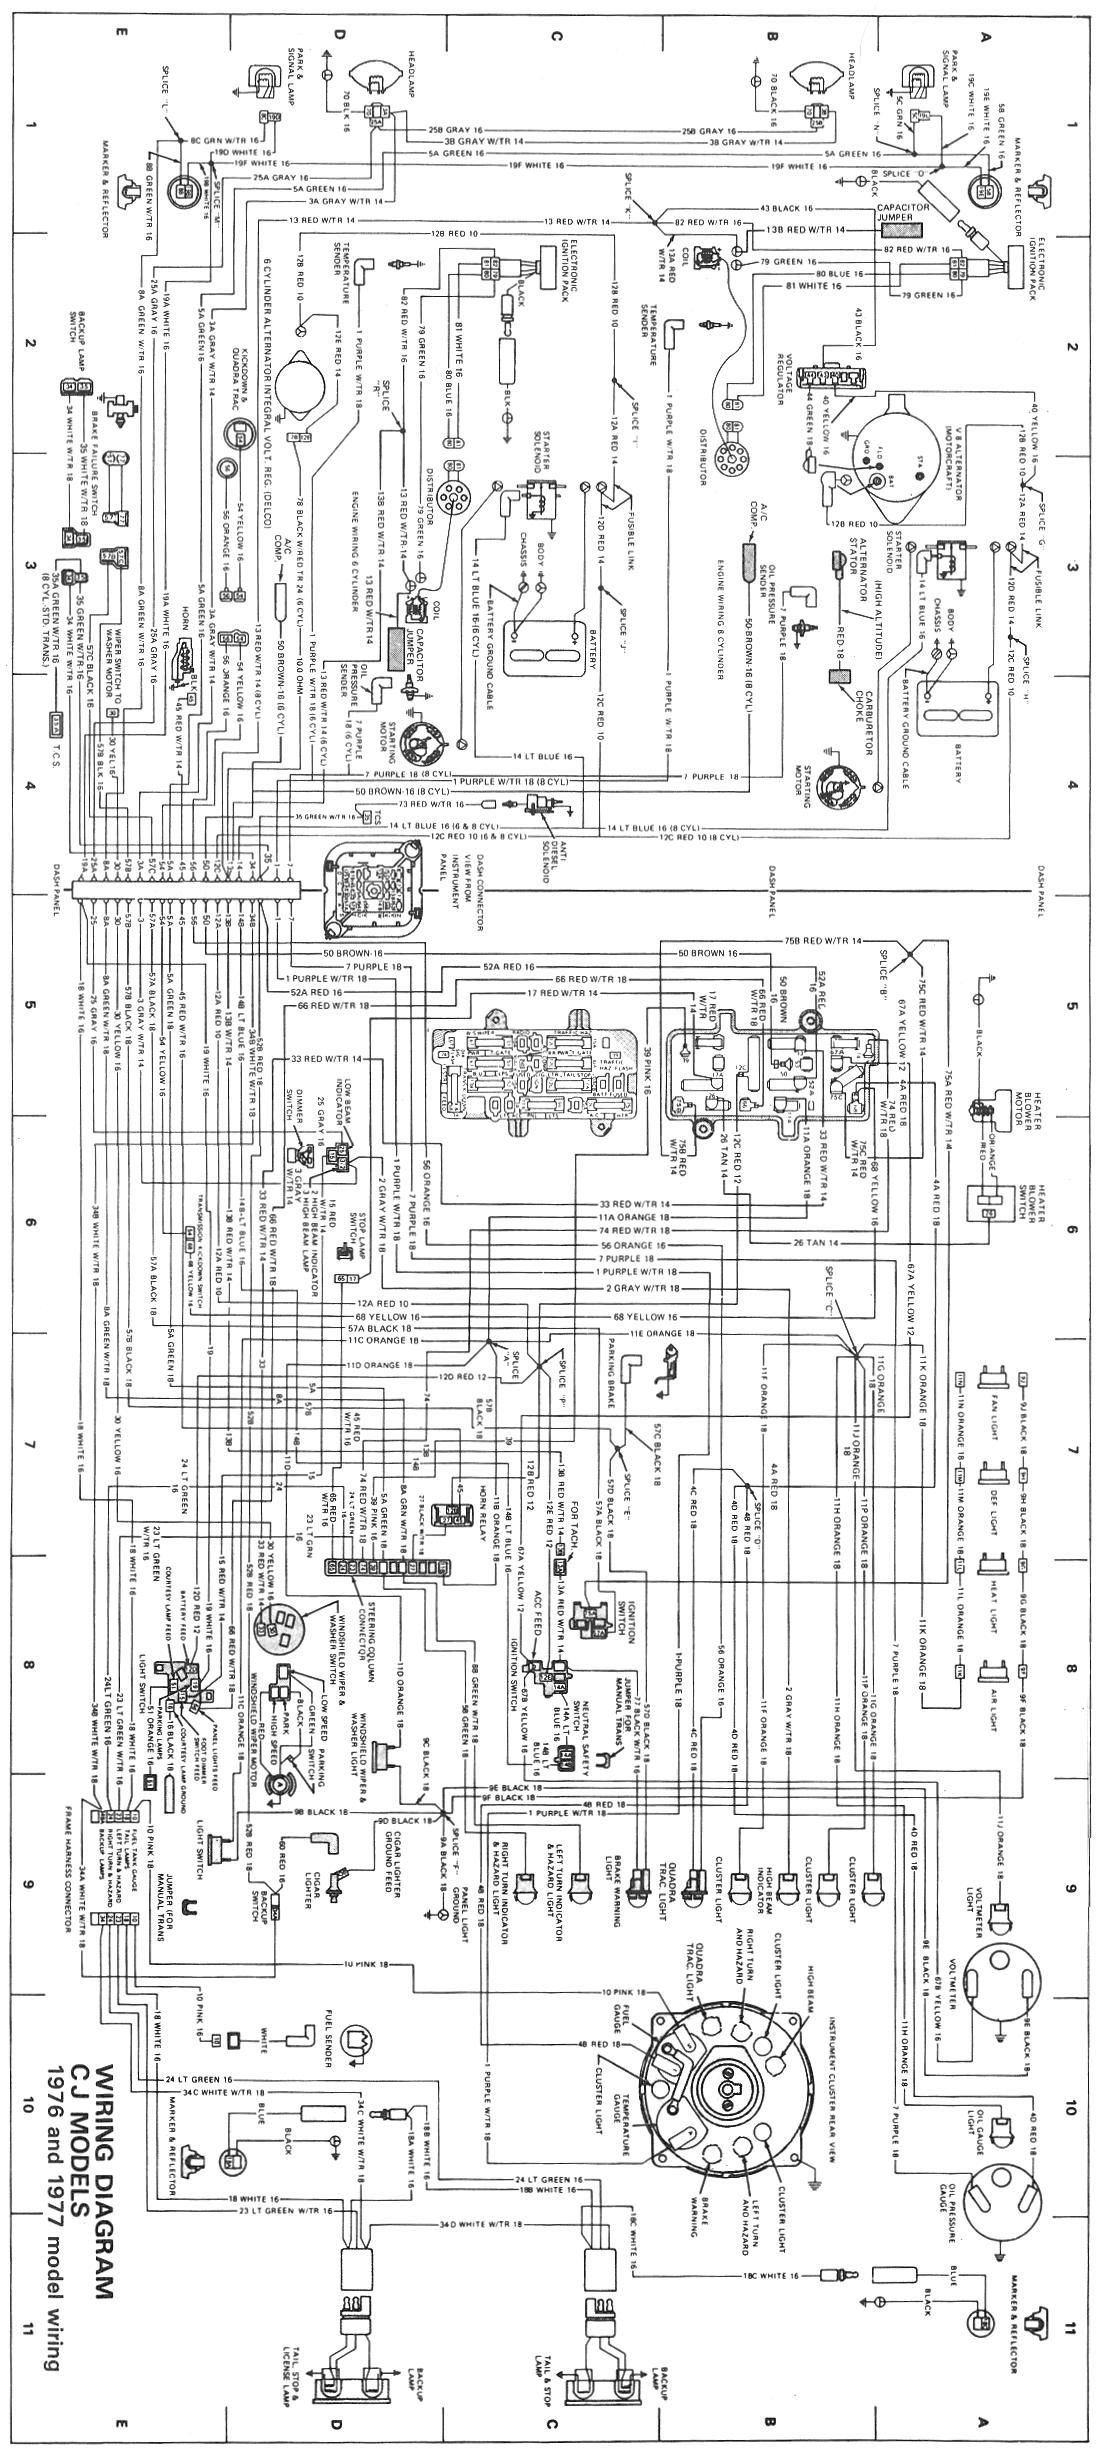 Wiring Diagram For Cj8 Bookmark About Pin Bmw E46 Diagrams On Pinterest Jeep 1976 And 1977 Cj Rh Com Chevy S10 Blazer Two Doorbells